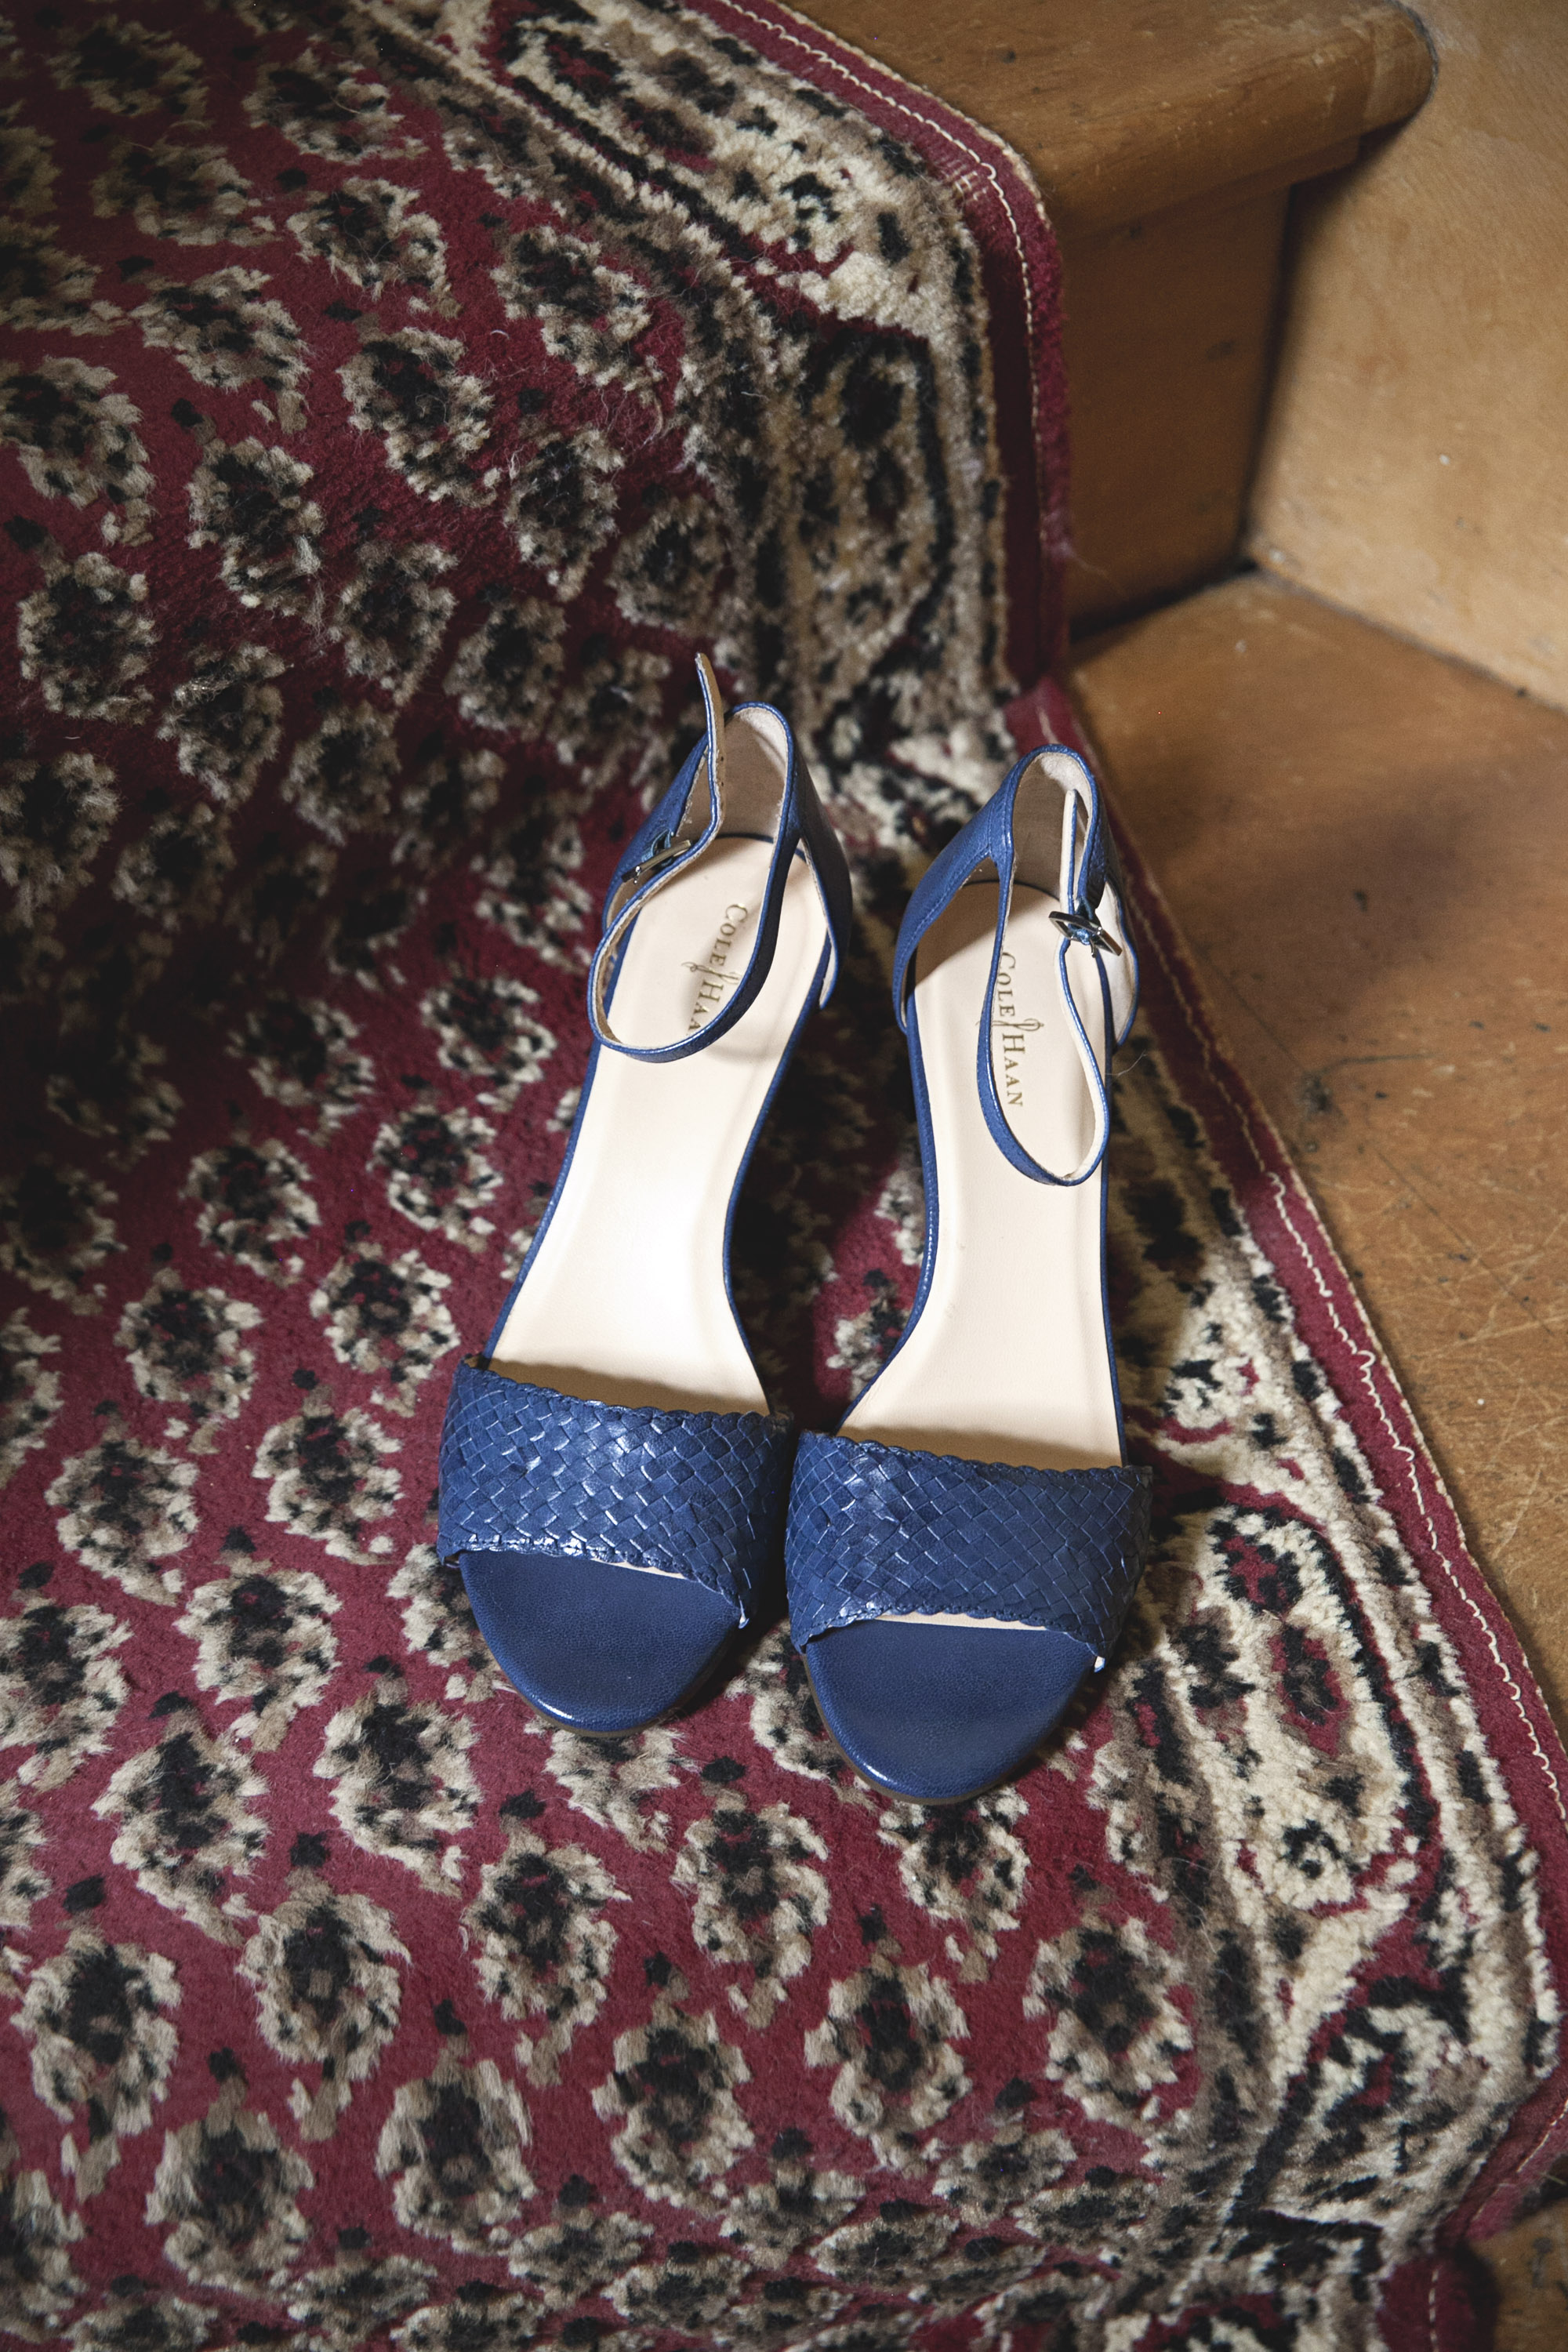 Blue Cole Haan wedding shoes